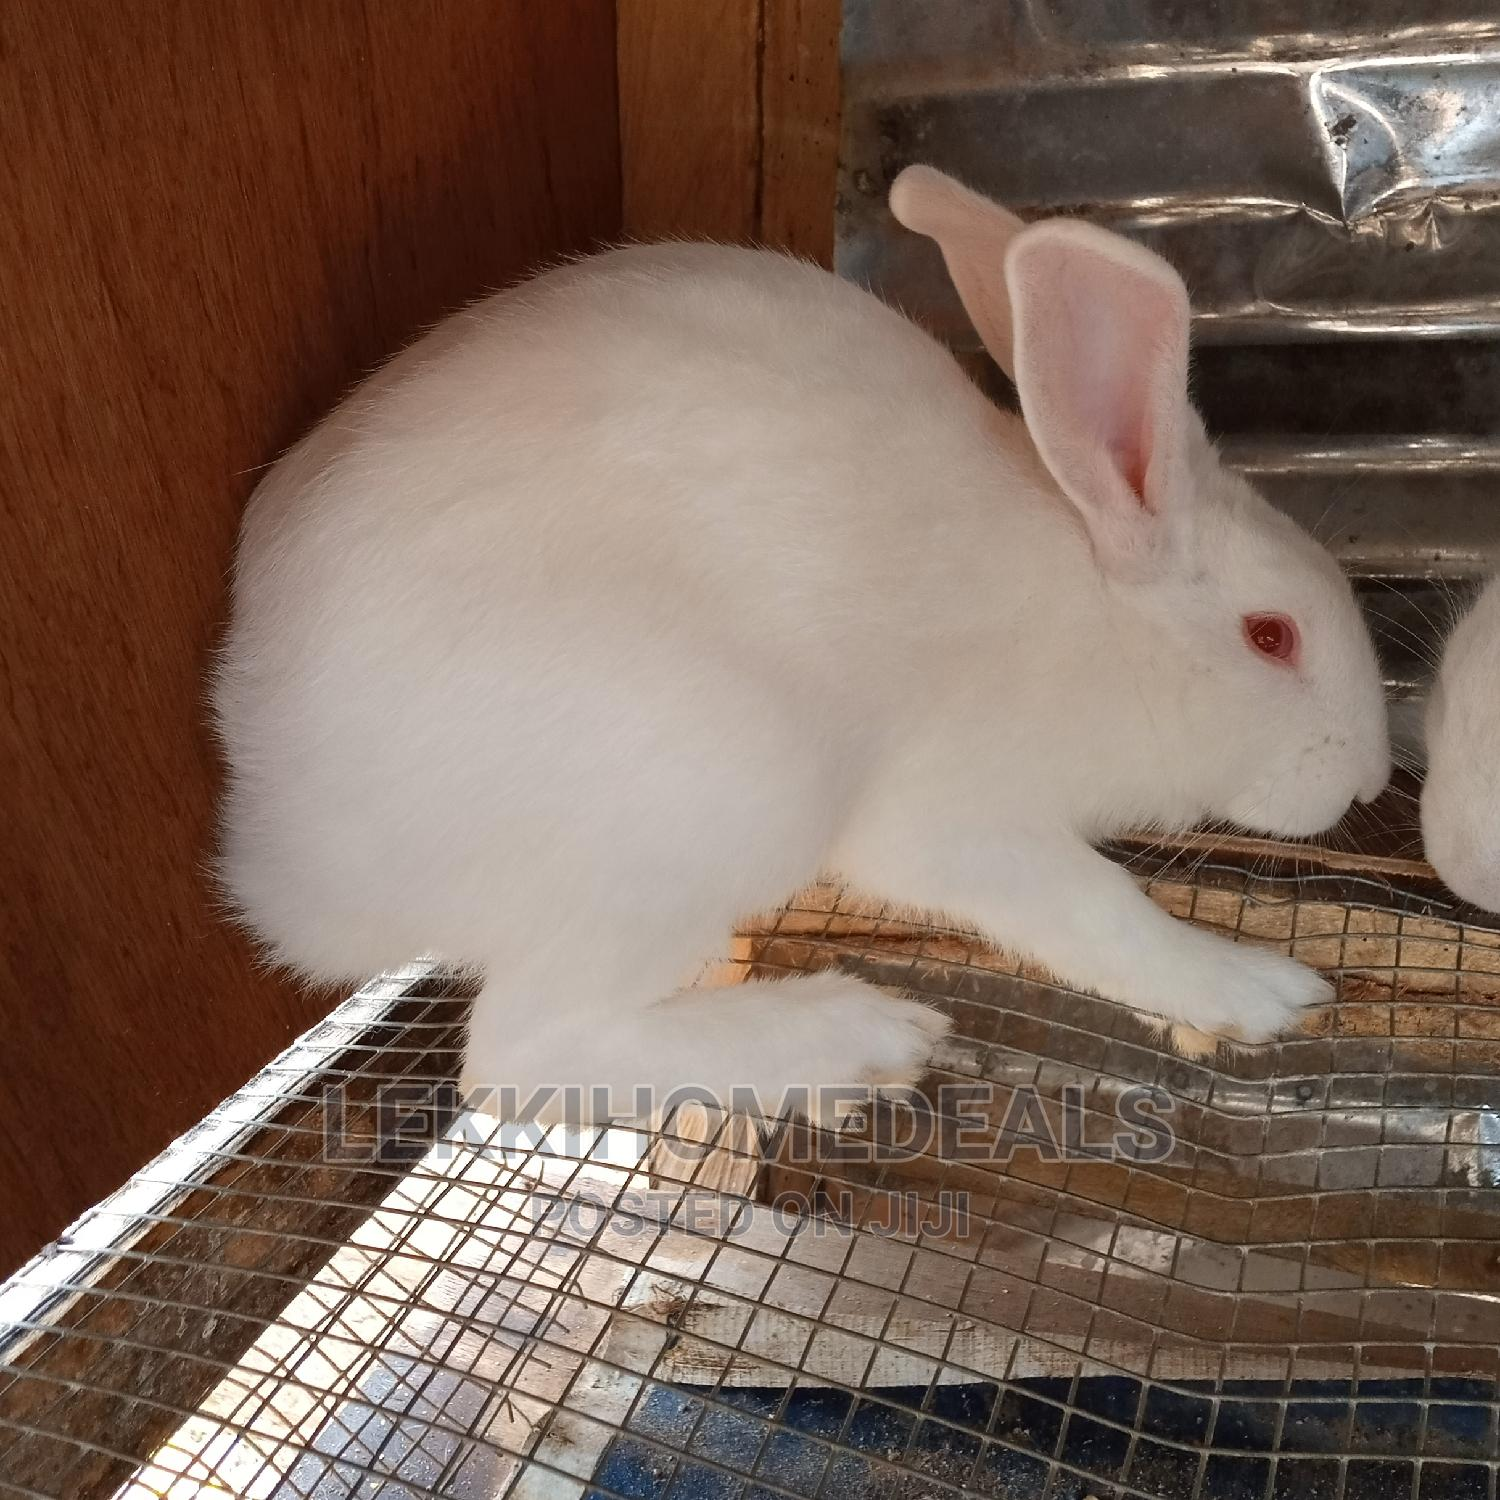 Archive: Rabbit Kittens (Bunnies) for Sale